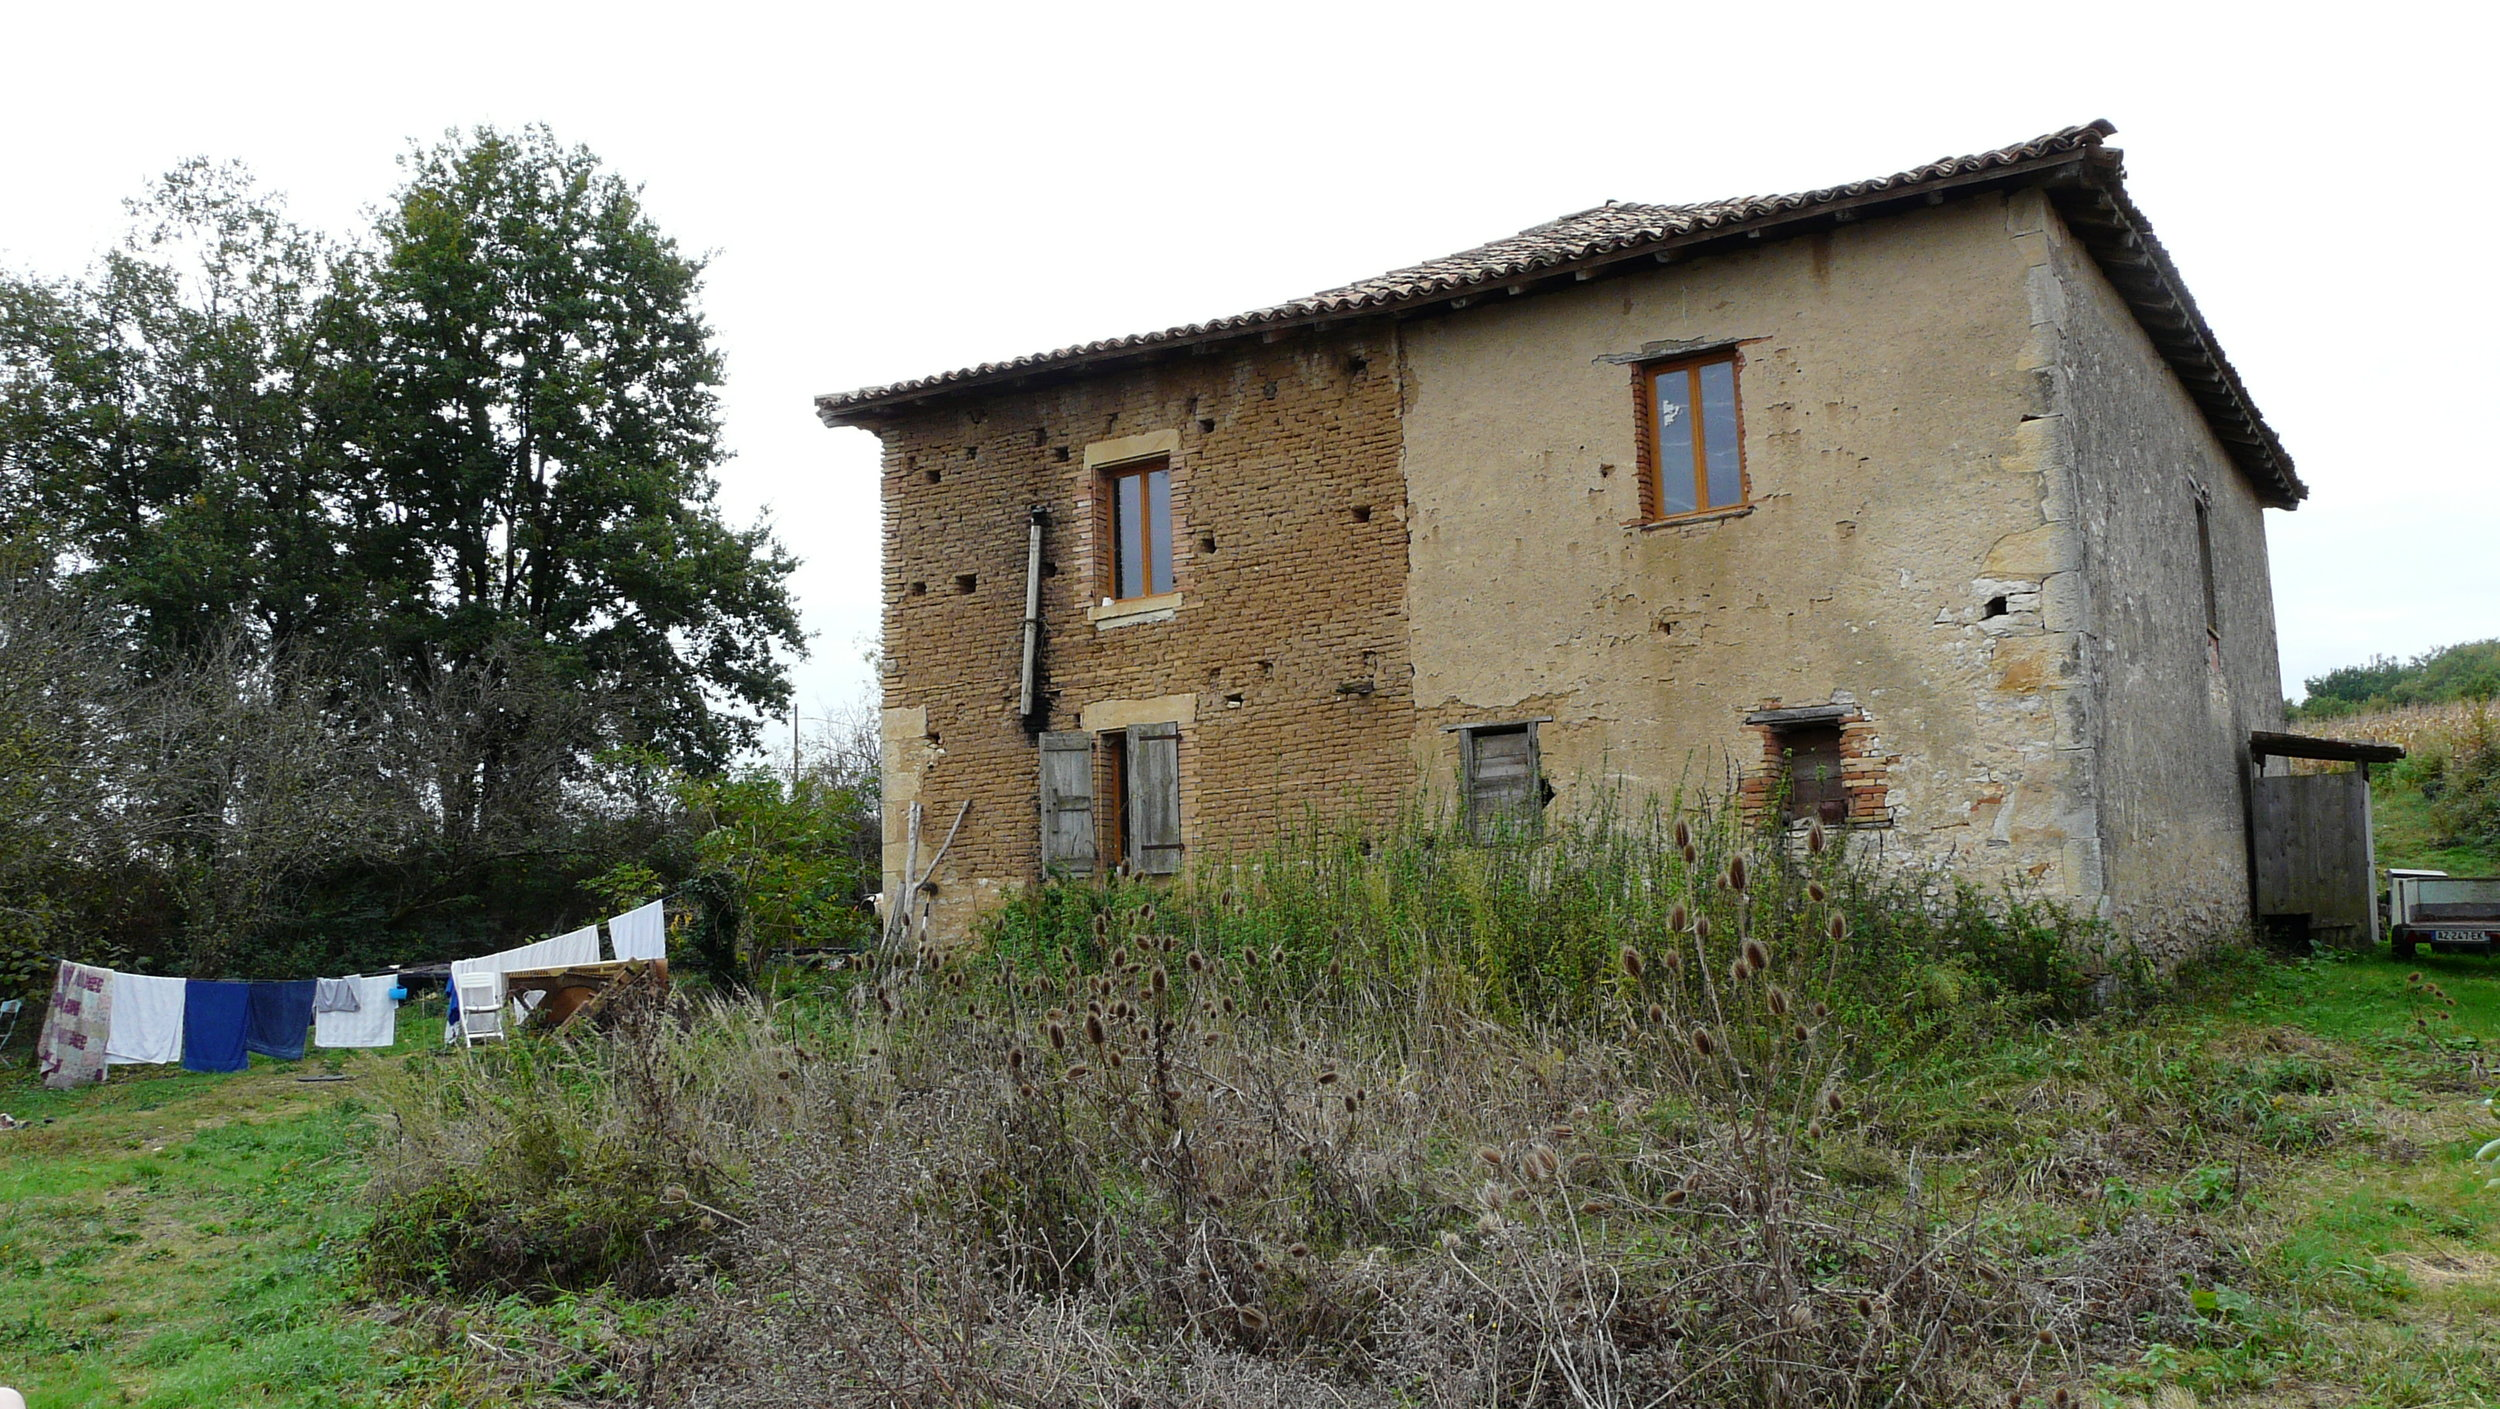 08 FAMILY HOME, PUYGAILLARD DE QUERCY, FRANCE.JPG